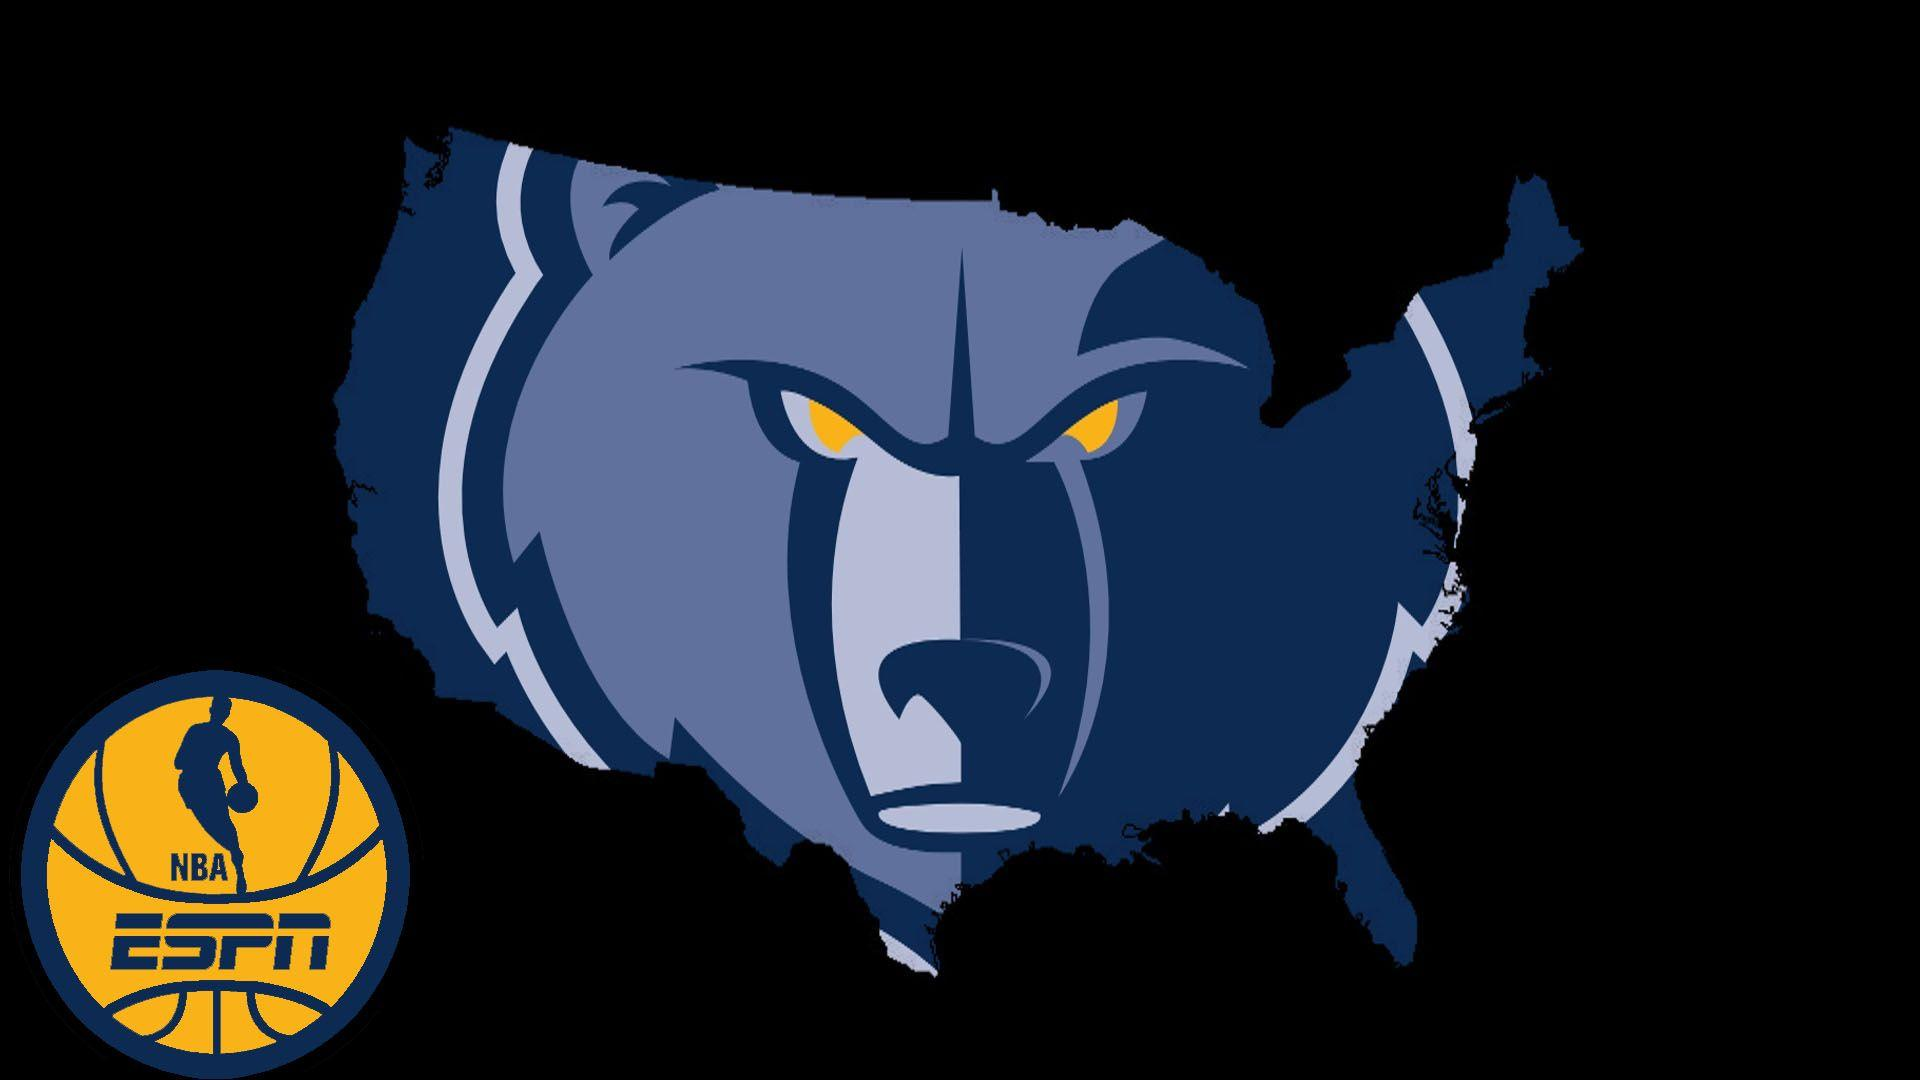 Memphis Grizzlies Wallpaper #1 | Memphis Grizzlies | Pinterest ...